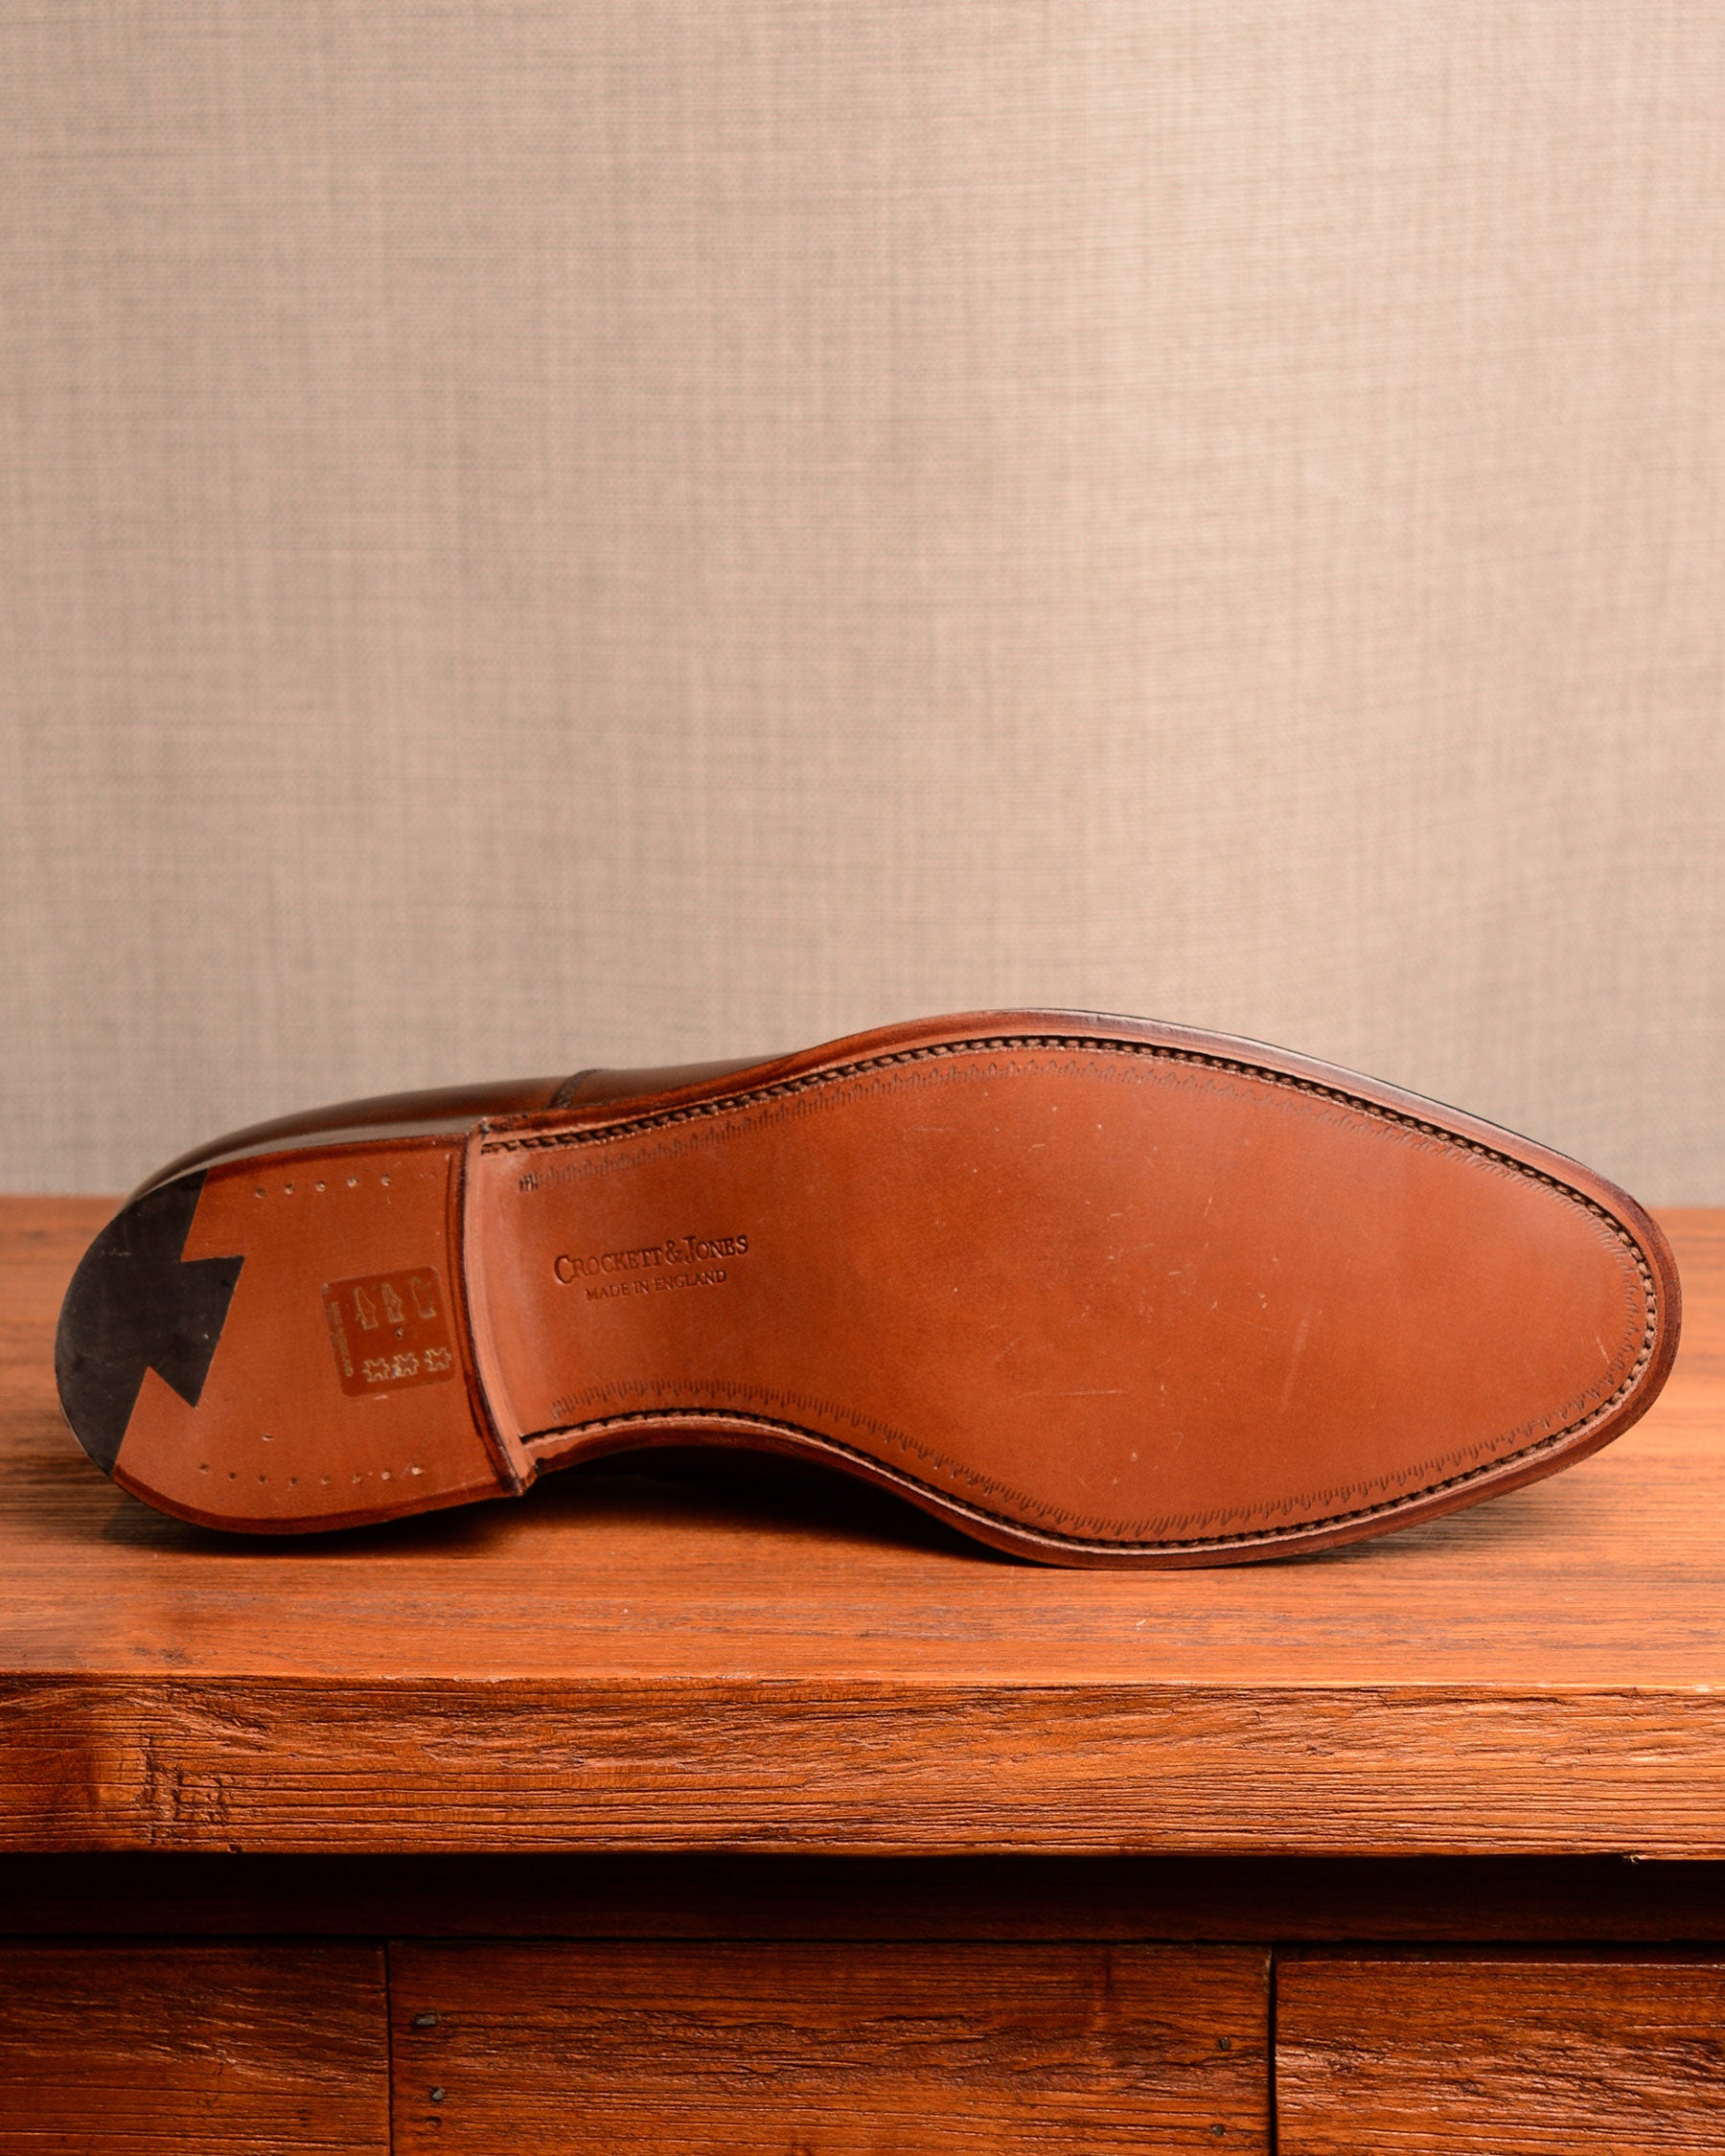 Crockett & Jones Connaught - Brown